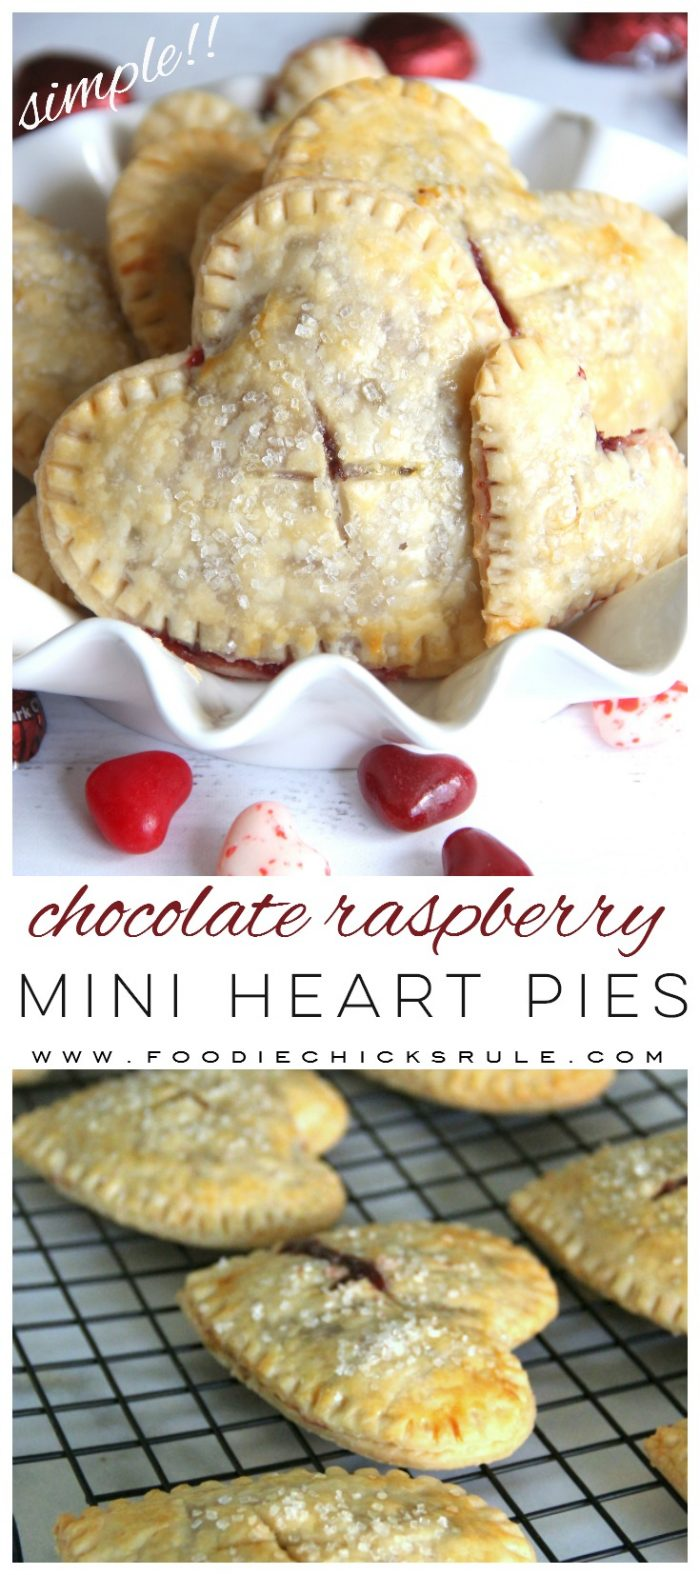 Chocolate Raspberry Mini Heart Pies ... Perfect for Valentine's Day! (or any day! ;) ) foodiechicksrule.com #valentinesdaydesserts #chocolateraspberry #miniheartpies #heartshapeddesserts #easydesserts #valentinesdessertideas